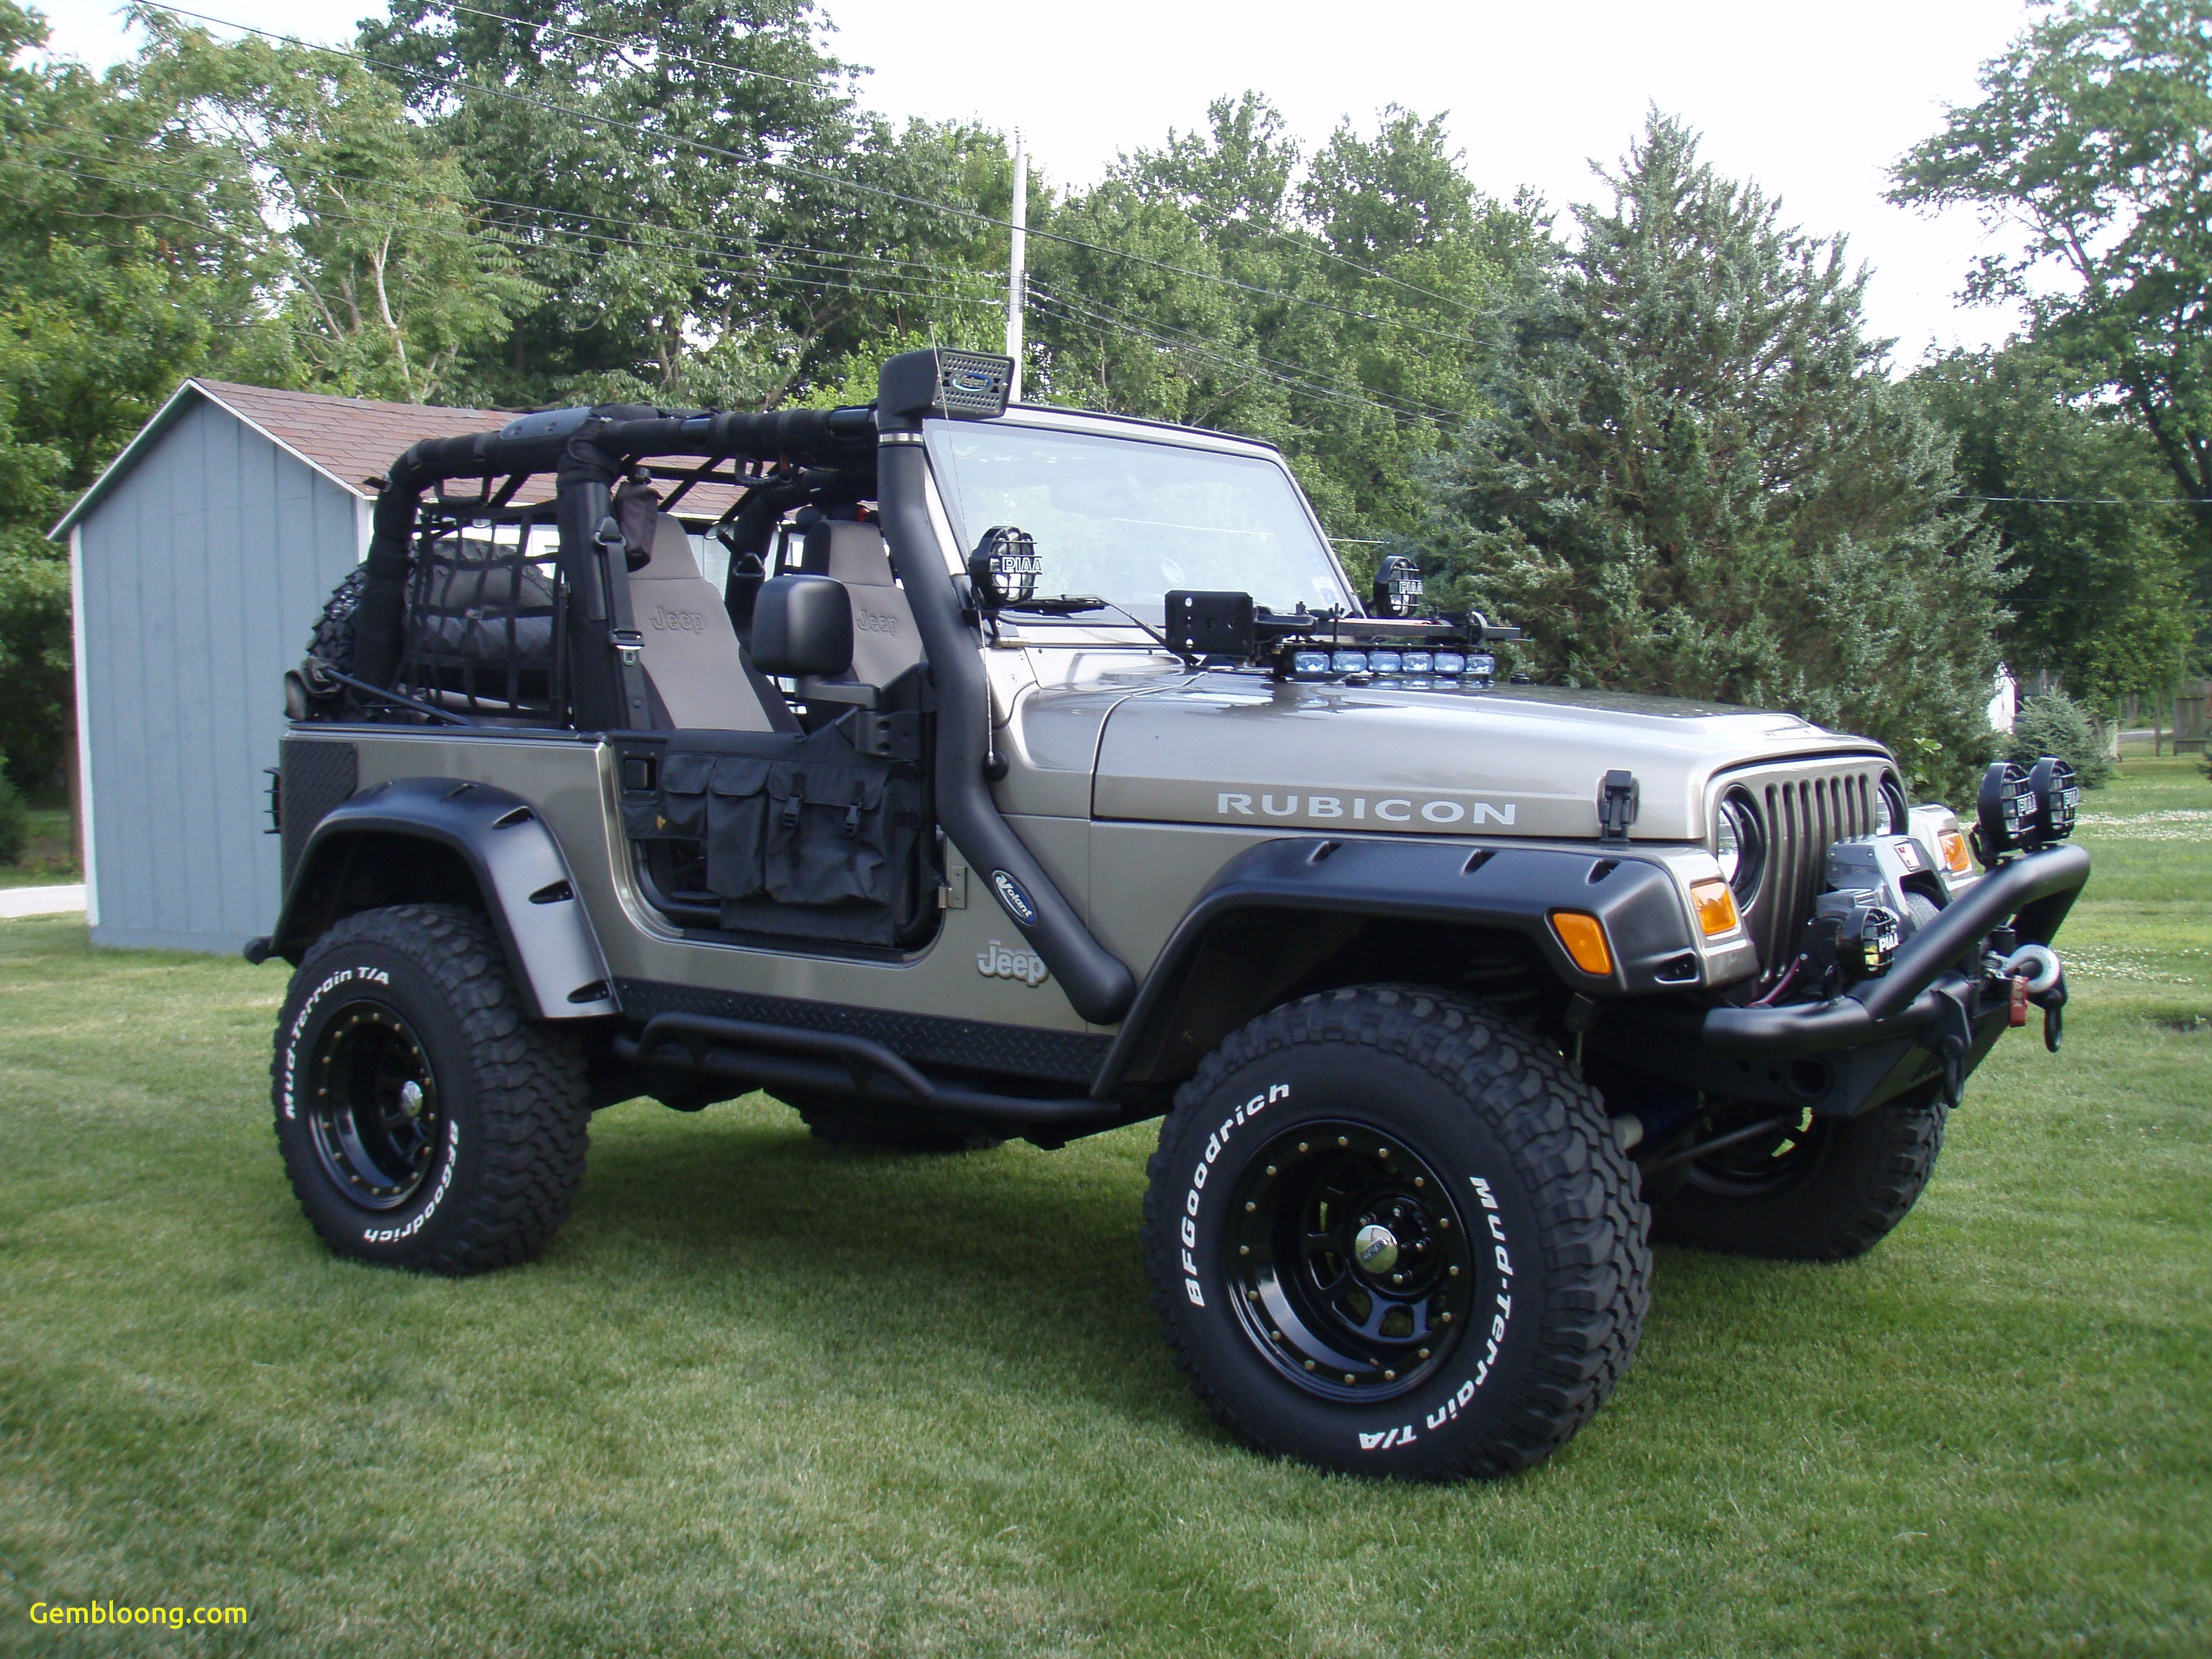 cars for sale near me jeeps new beautiful jeep wranglers for sale near me at cdbcebdccfccb